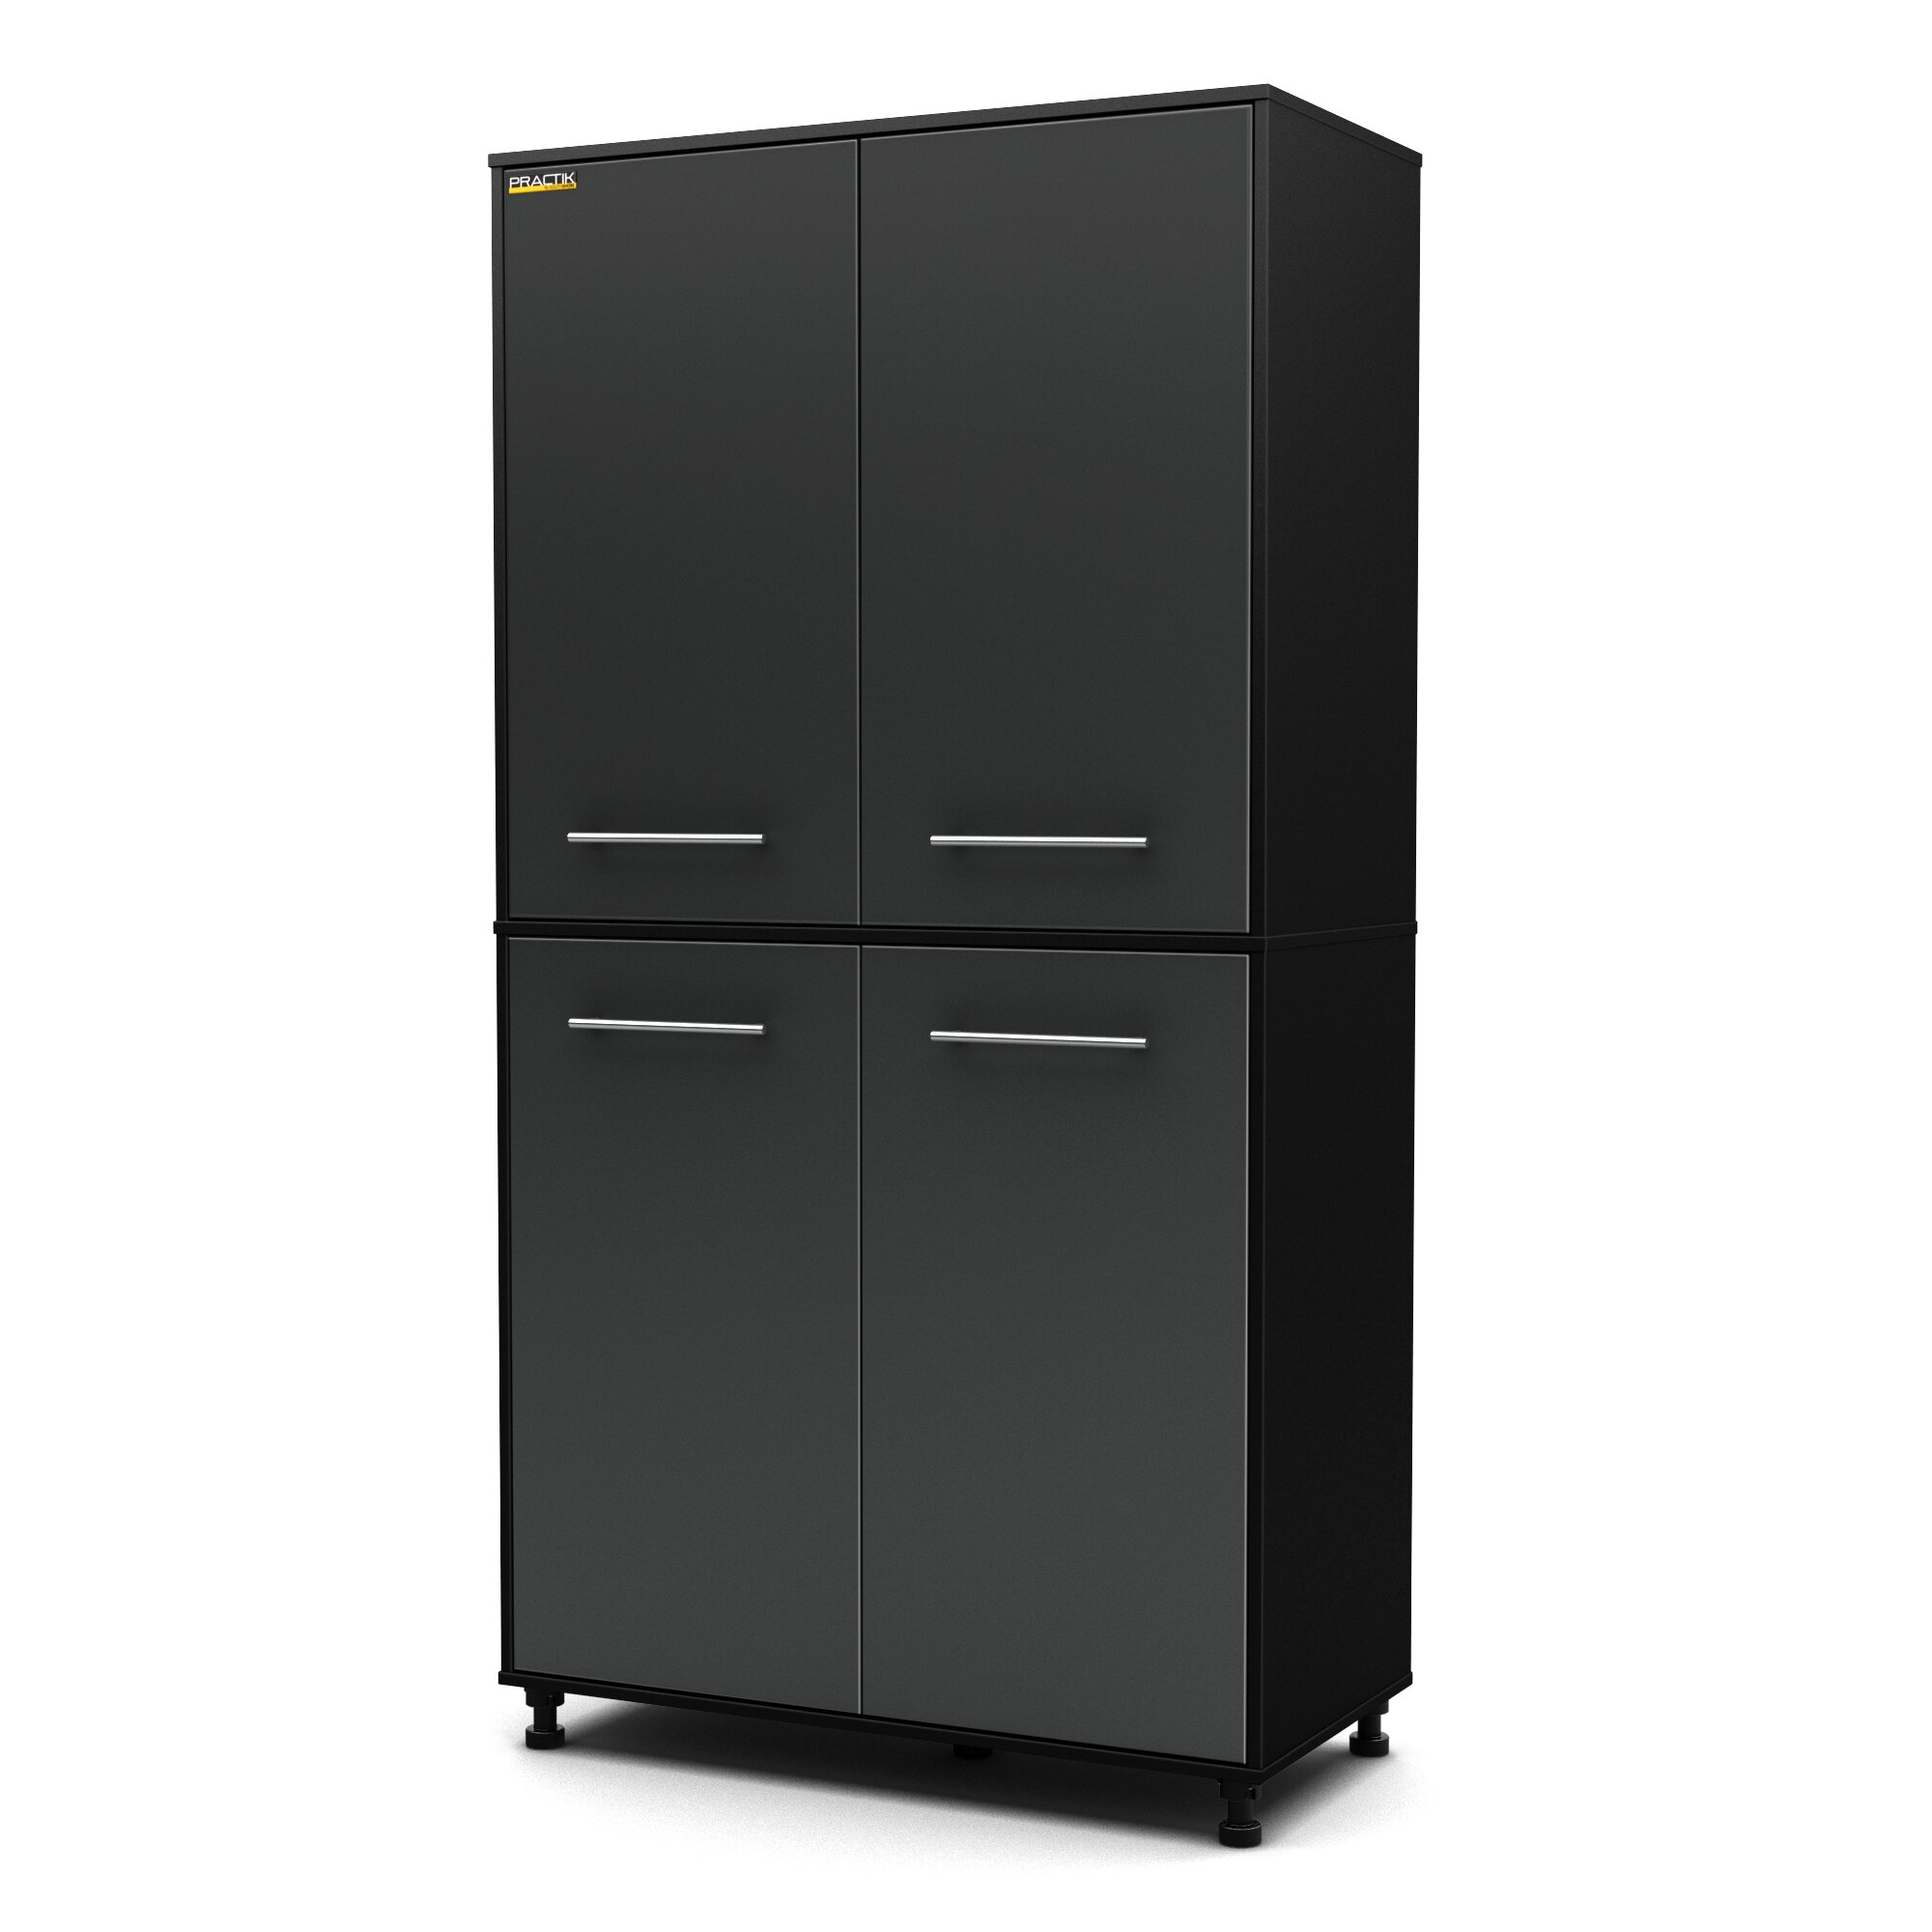 Resin Utility Cabinet South Shore Karbon 76 H X 395 W X 195 D Storage Cabinet